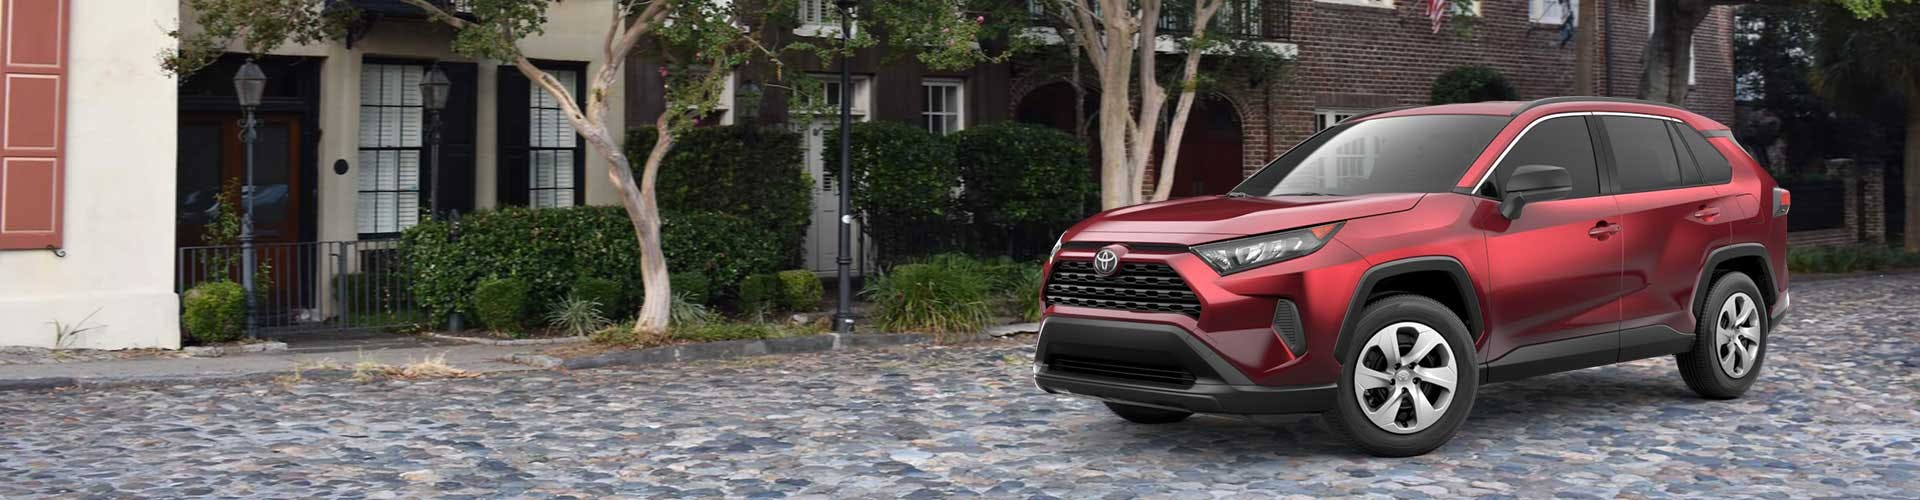 diehl toyota butler diehl automotive group rav4 le suv family car lease special new vehicle special